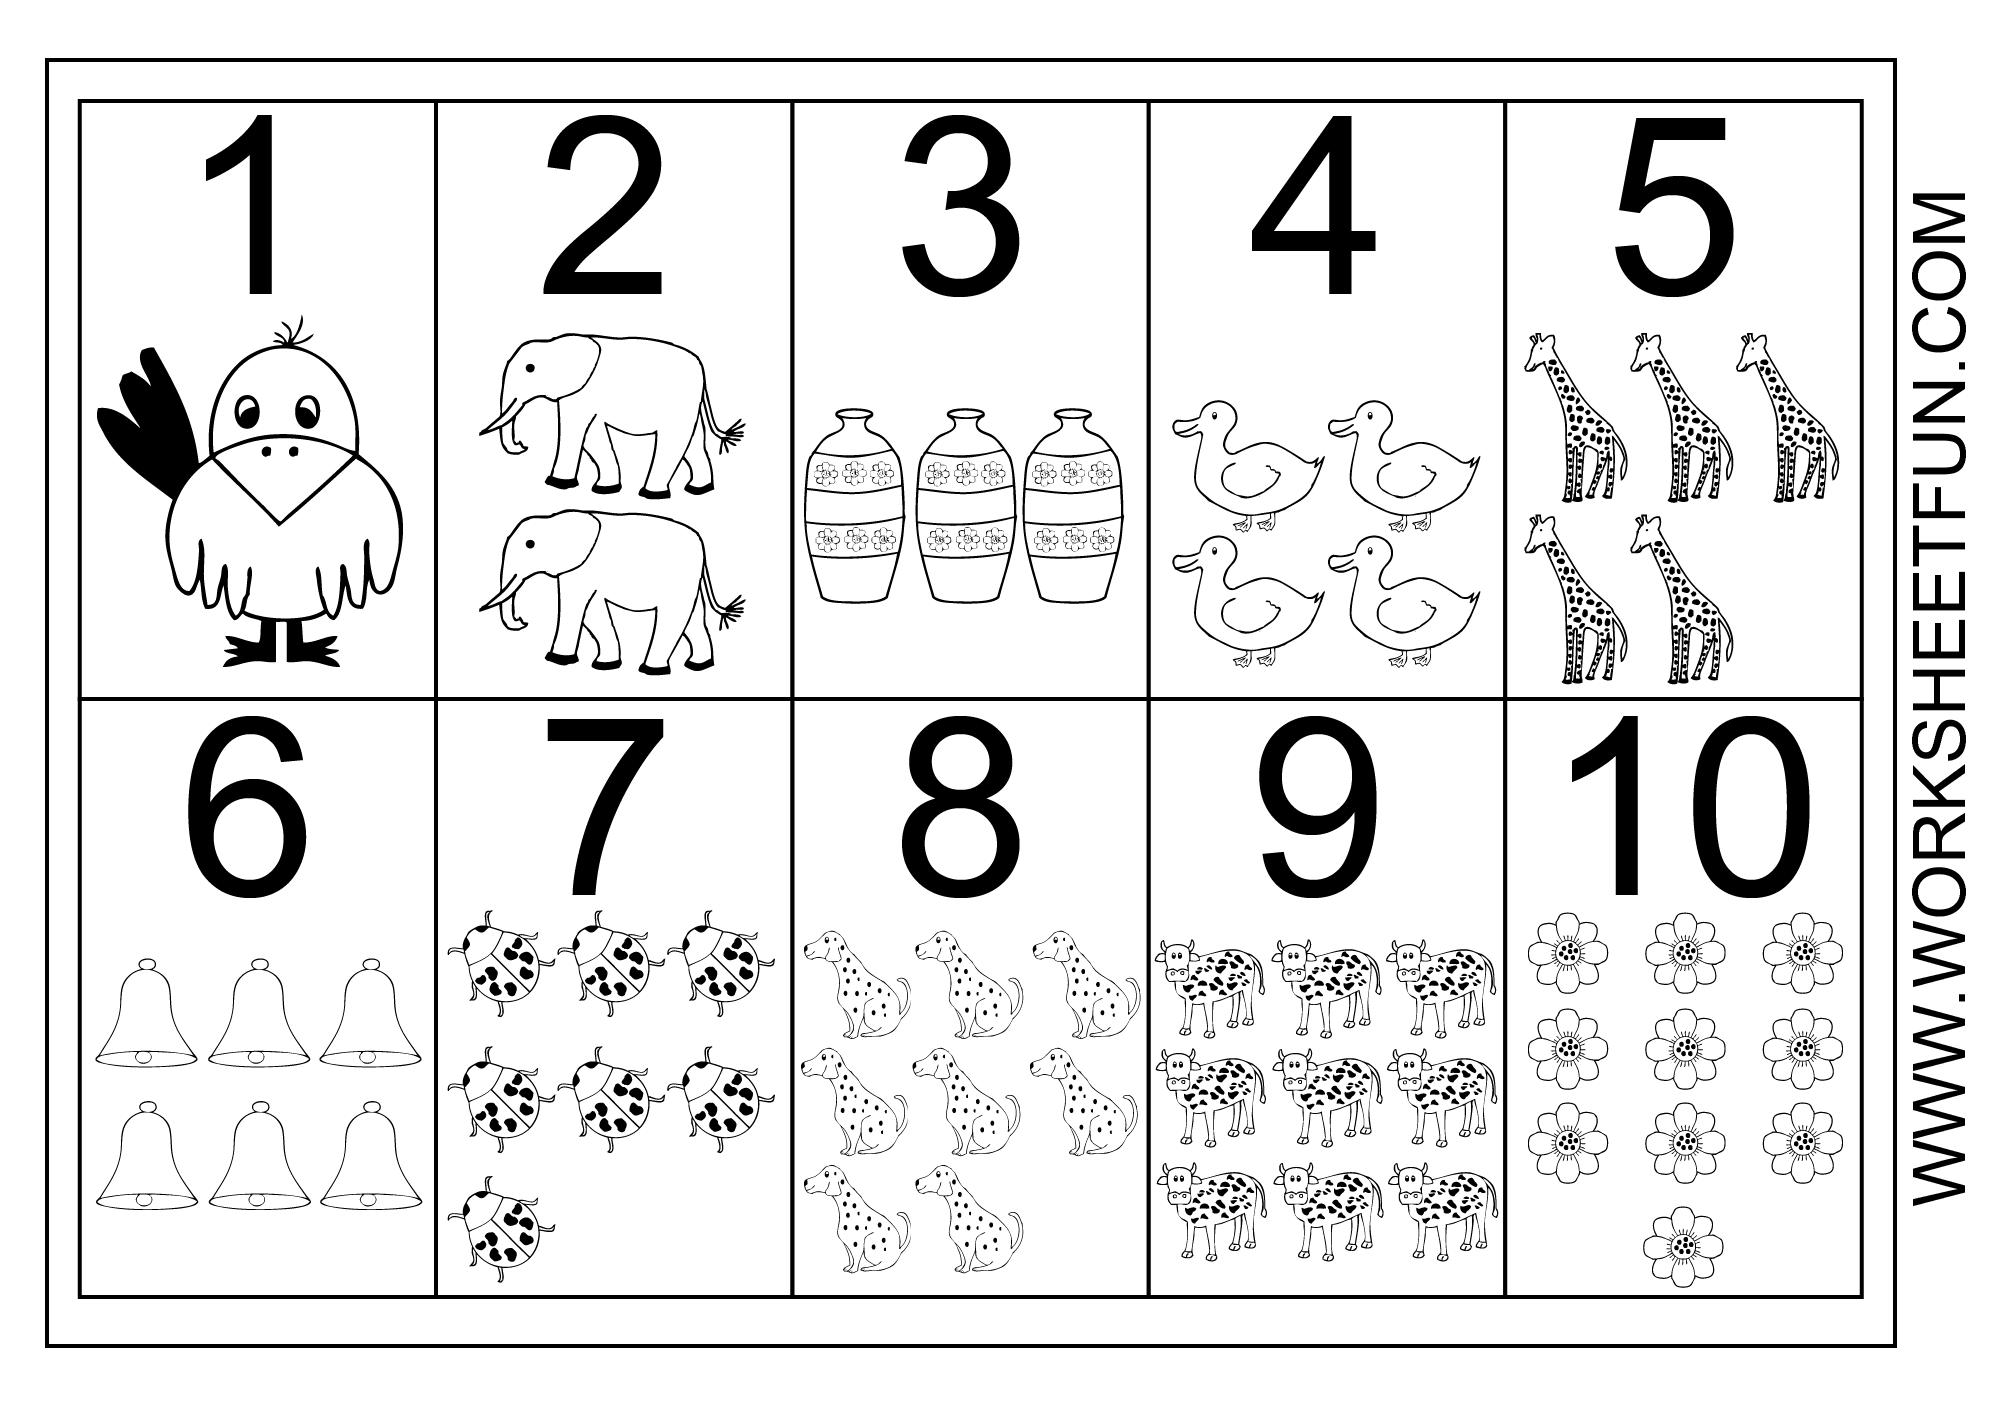 Multiplication Worksheets Numbers 1-10 1